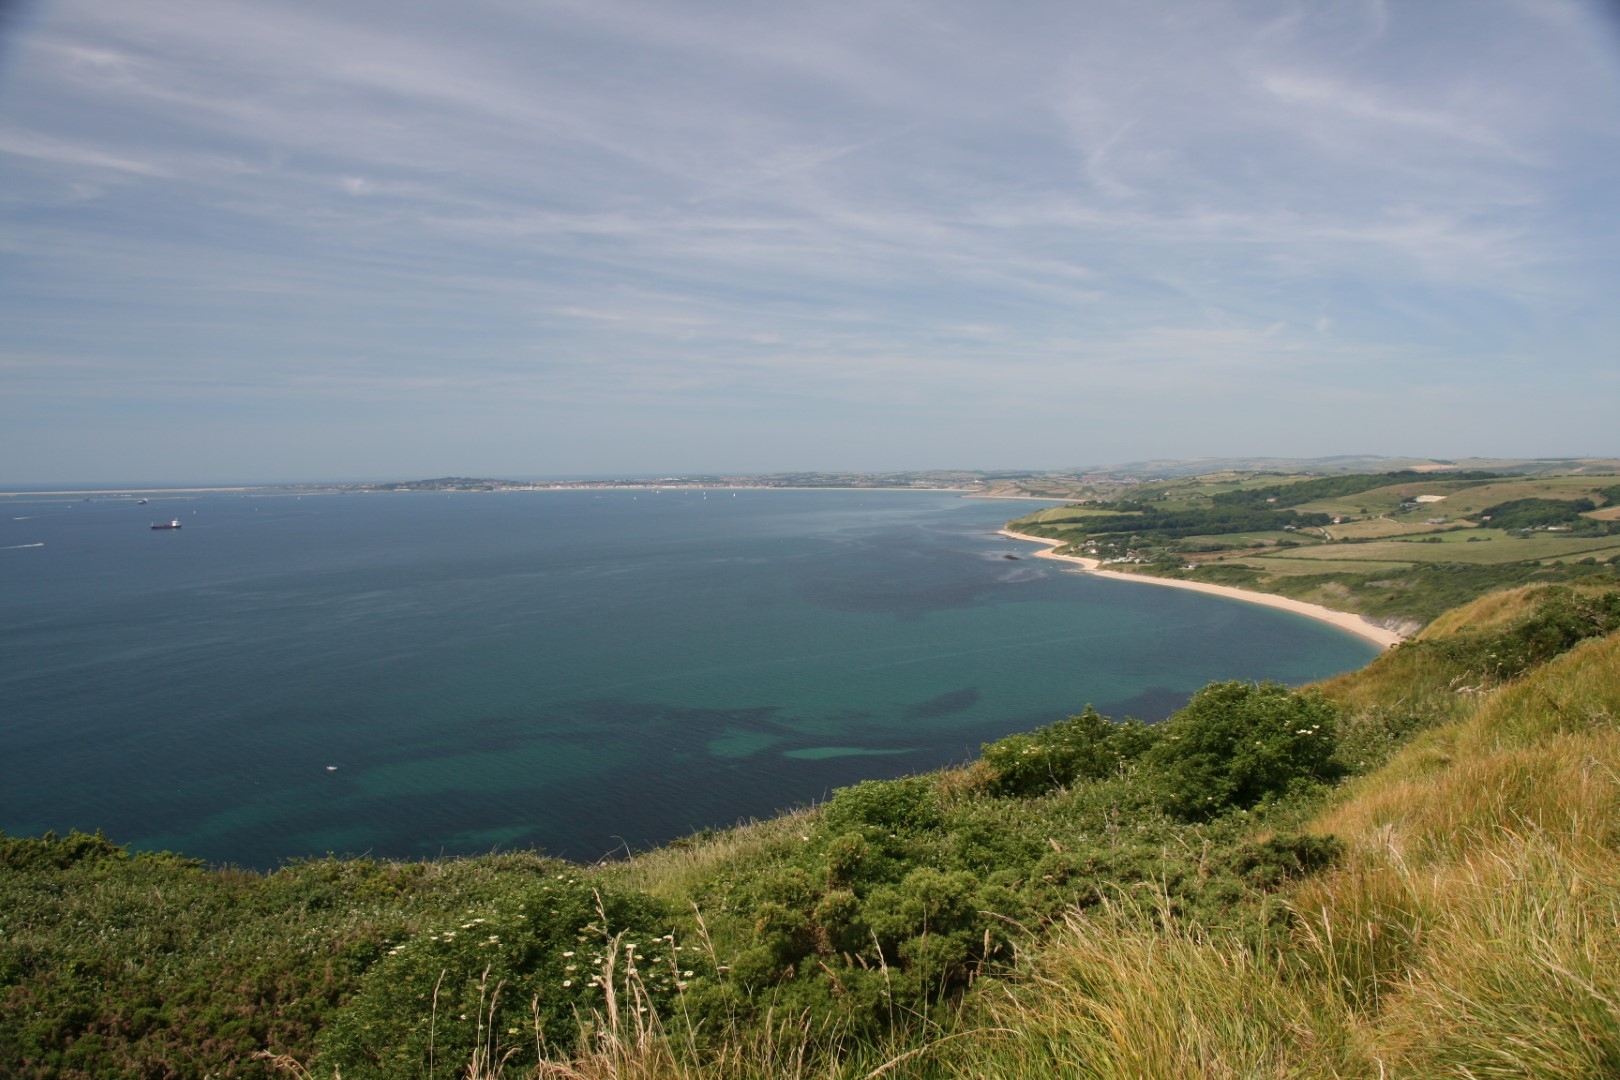 Weymouth and Ringstead - Ringstead Bay from above